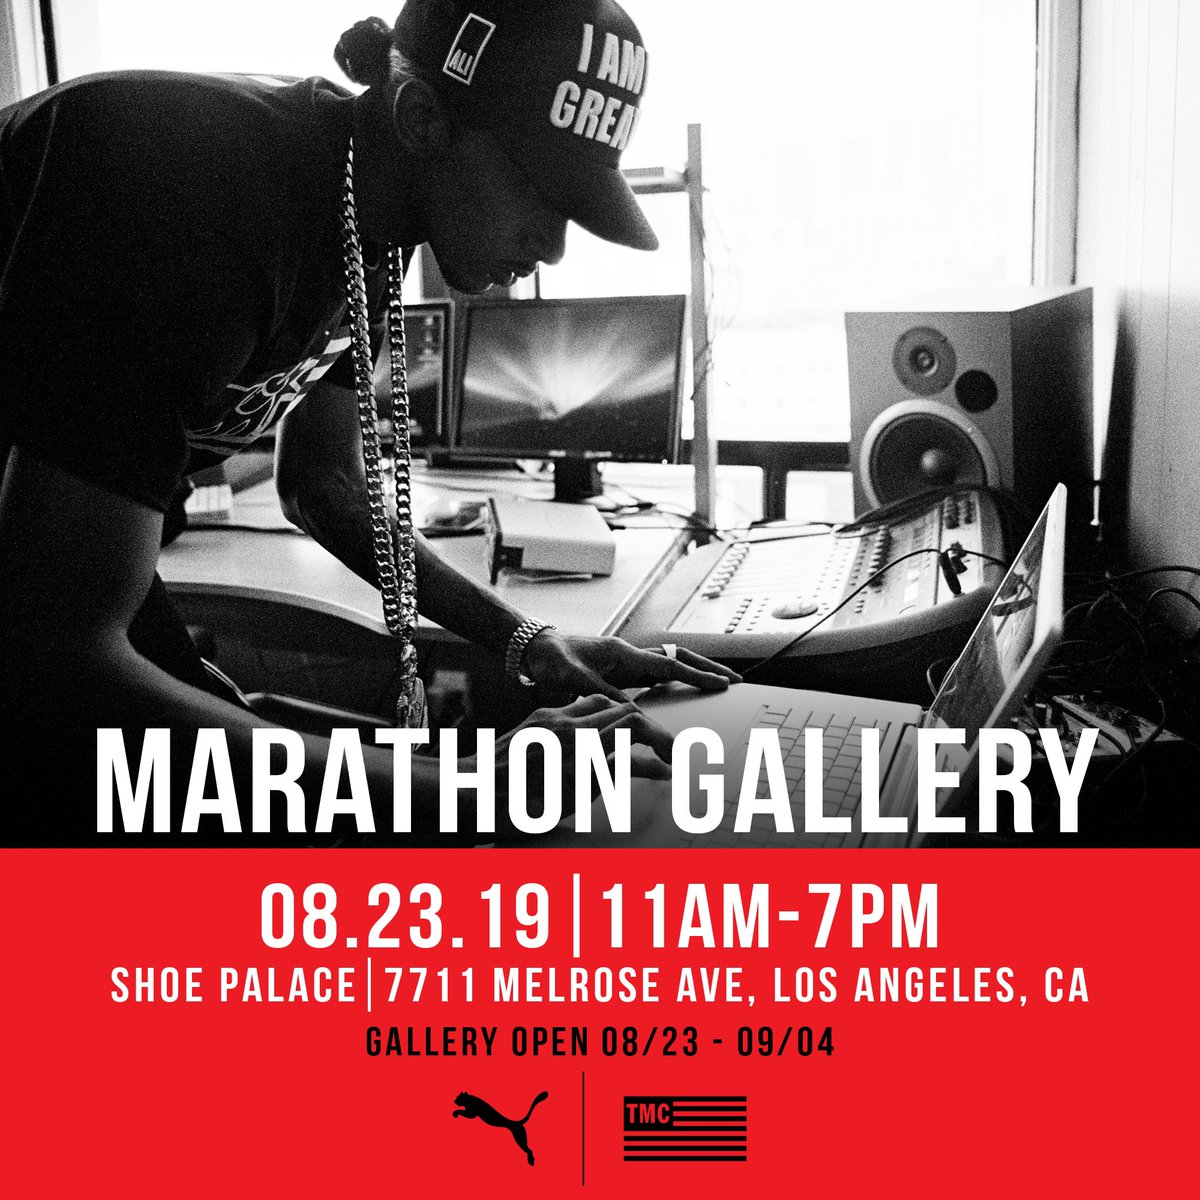 LA please join us this Friday, August 23rd for a special opening of the #MarathonGallery presented by @Puma and @TheMarathonClothing. We'll be celebrating the life and legacy of @NipseyHussle through some very special photographs captured throughout the last decade.  #PUMAxTMC <br>http://pic.twitter.com/XRV1q83h2R